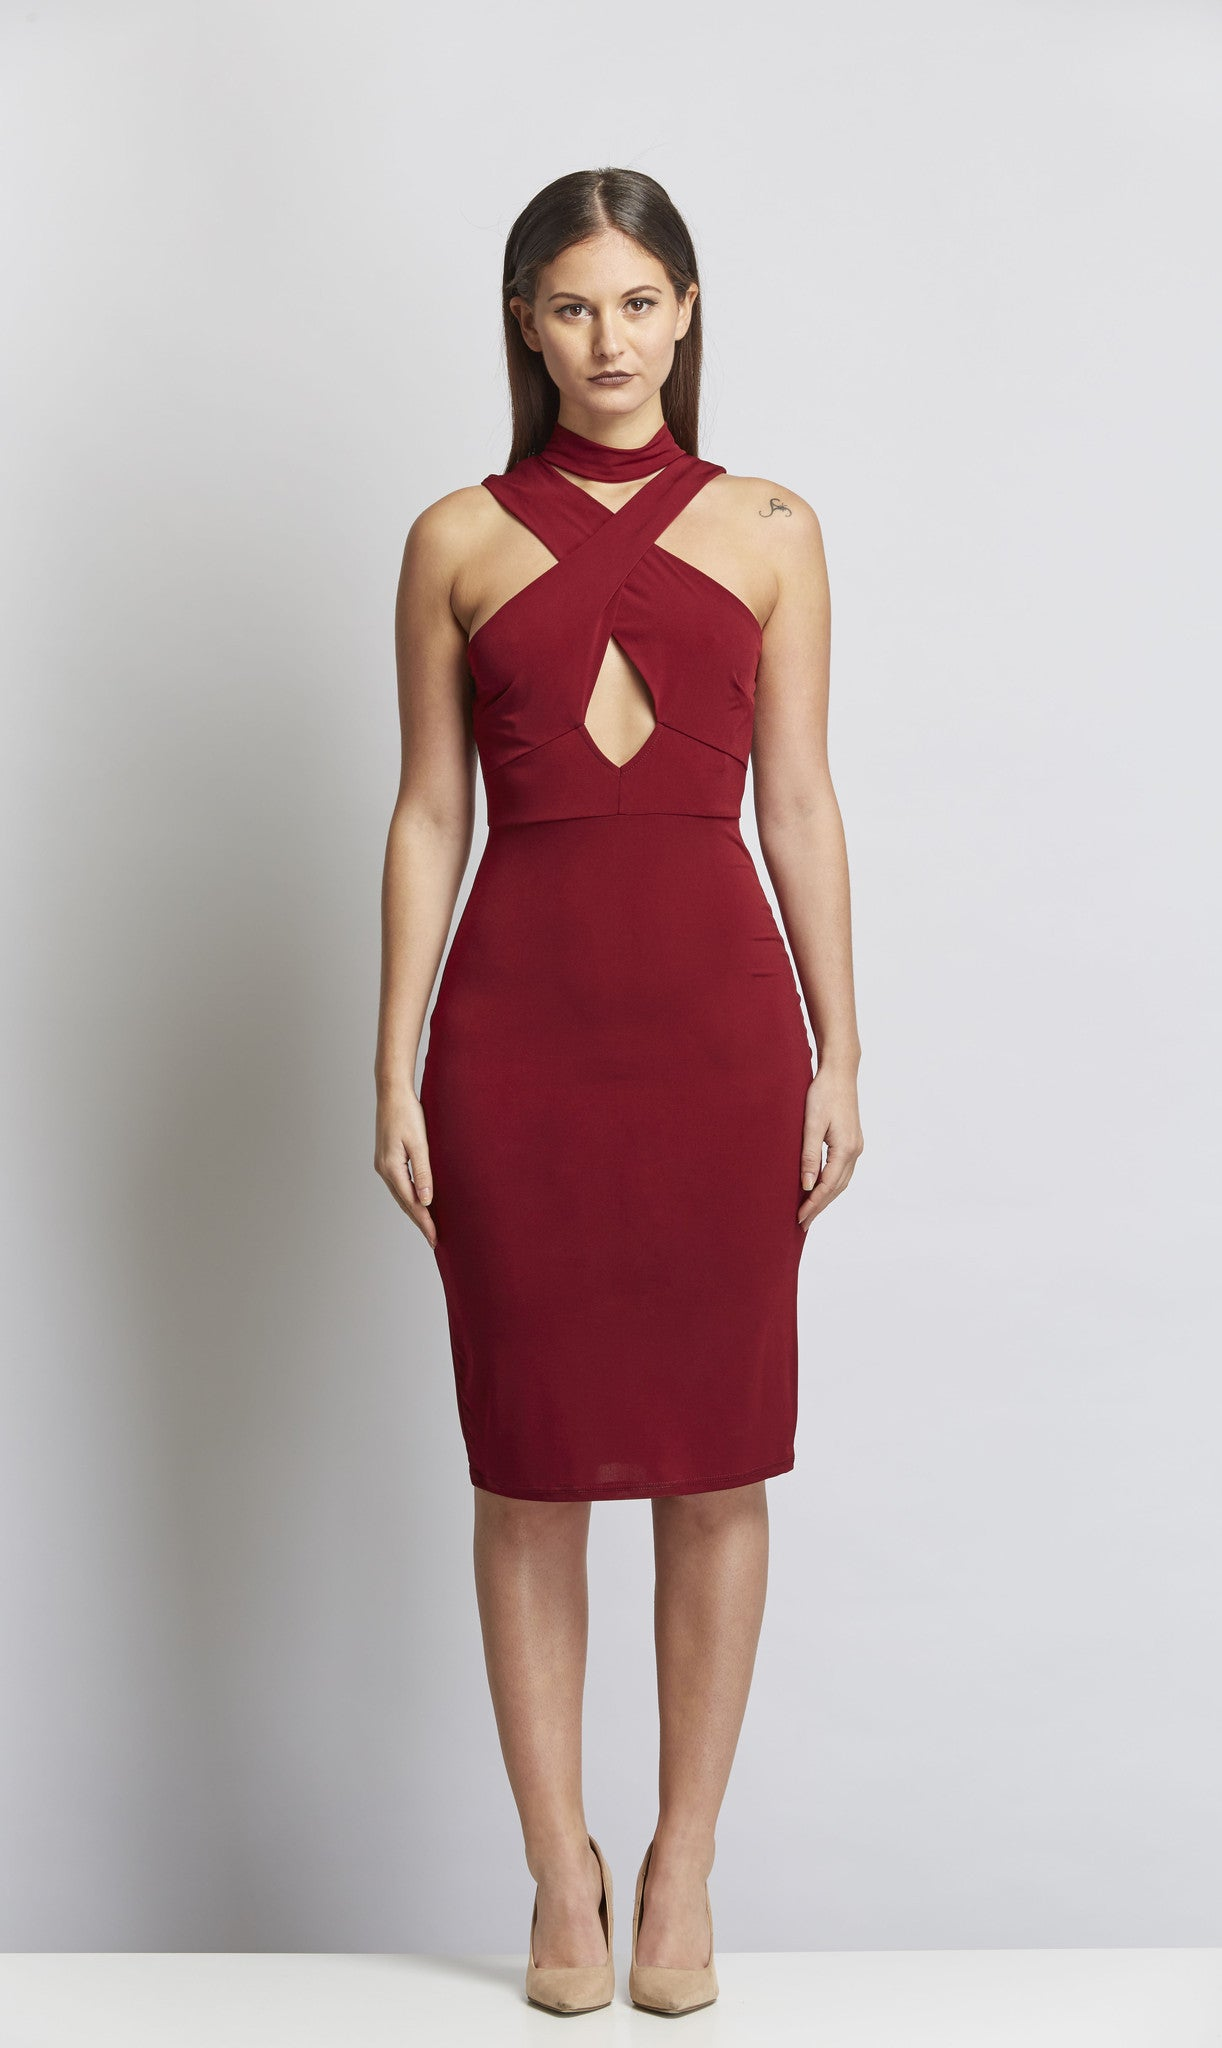 Burgundy Savage Dress - Black